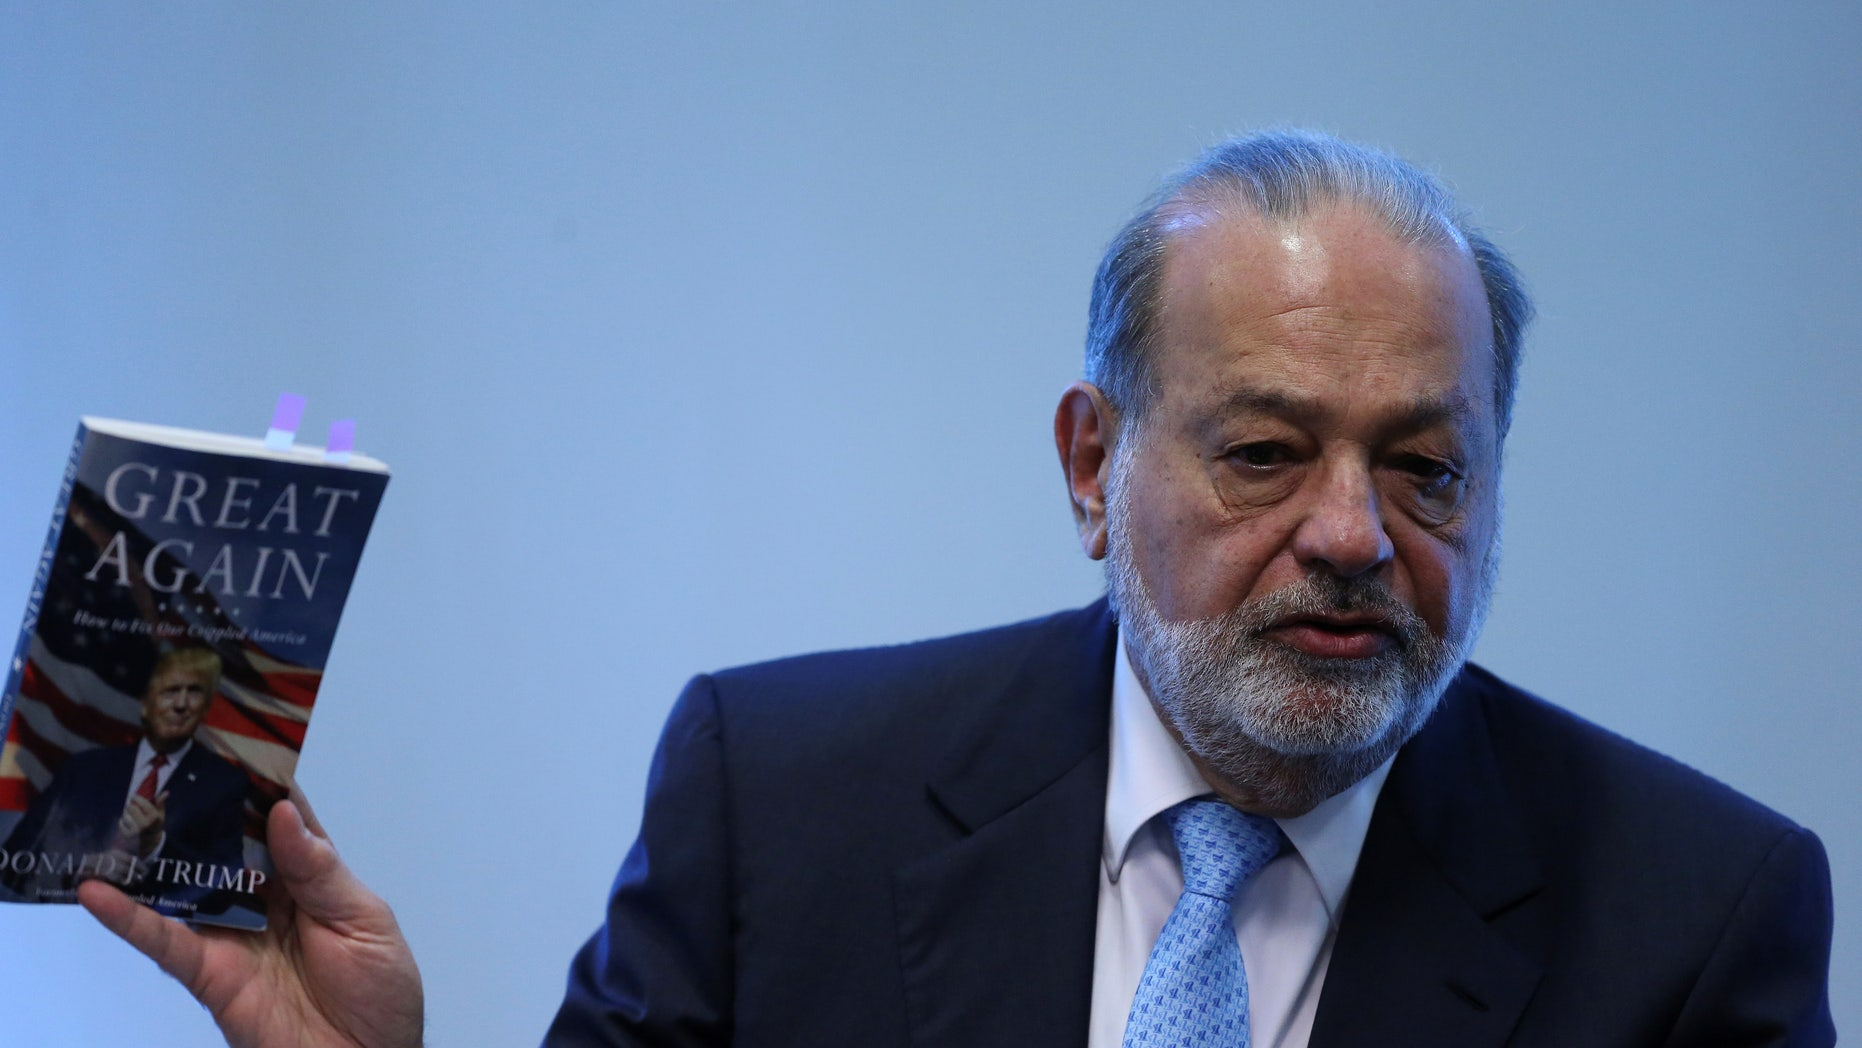 Mexican billionaire Carlos Slim during a news conference in Mexico City, Mexico January 27, 2017